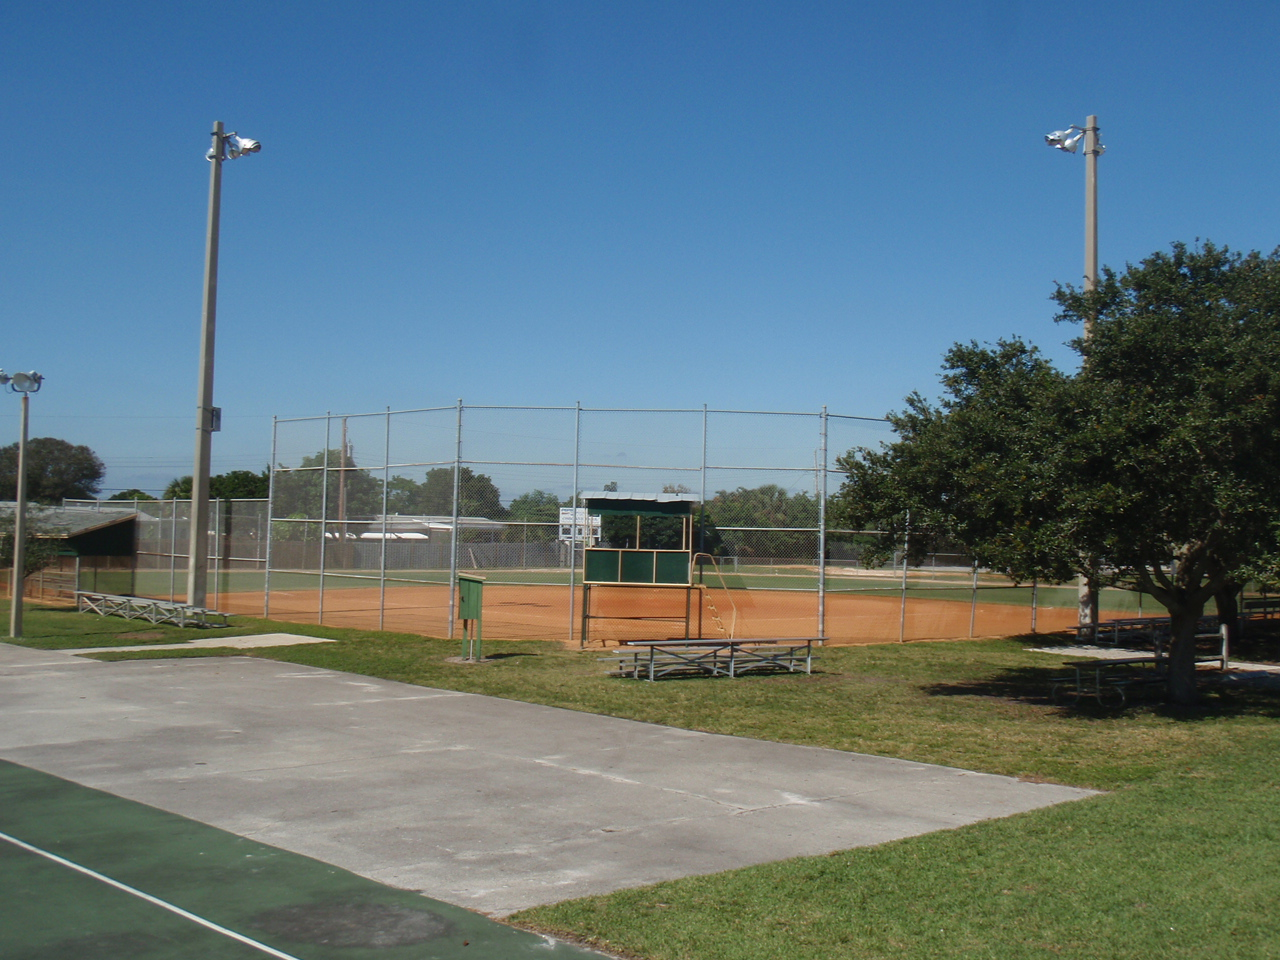 Osborne Park youth baseball field with dirt infield